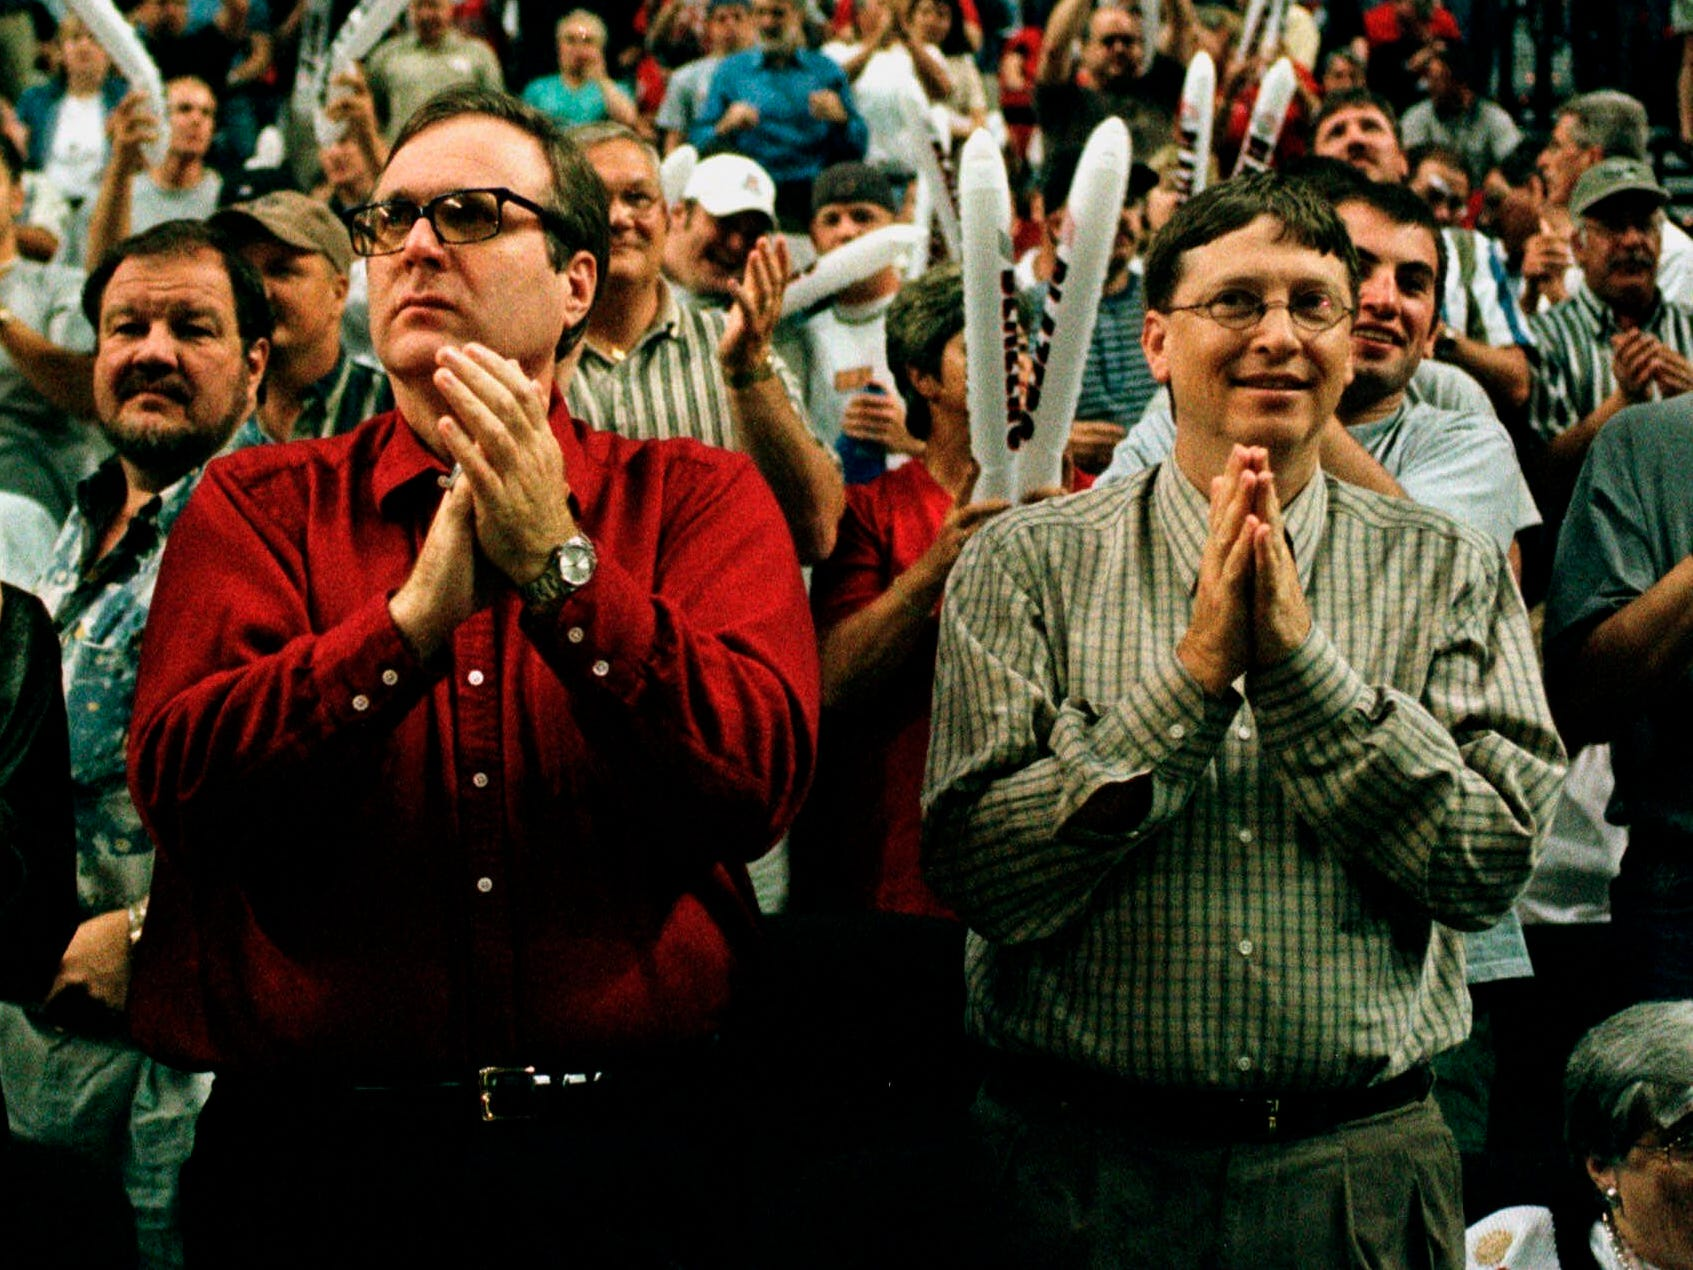 FILE- In this May 27, 1999, file photo, Portland Trail Blazers owner Paul Allen, left, is joined by Bill Gates as they cheer the Blazers against the Utah Jazz during NBA playoff action in Portland, Ore., May 27, 1999.